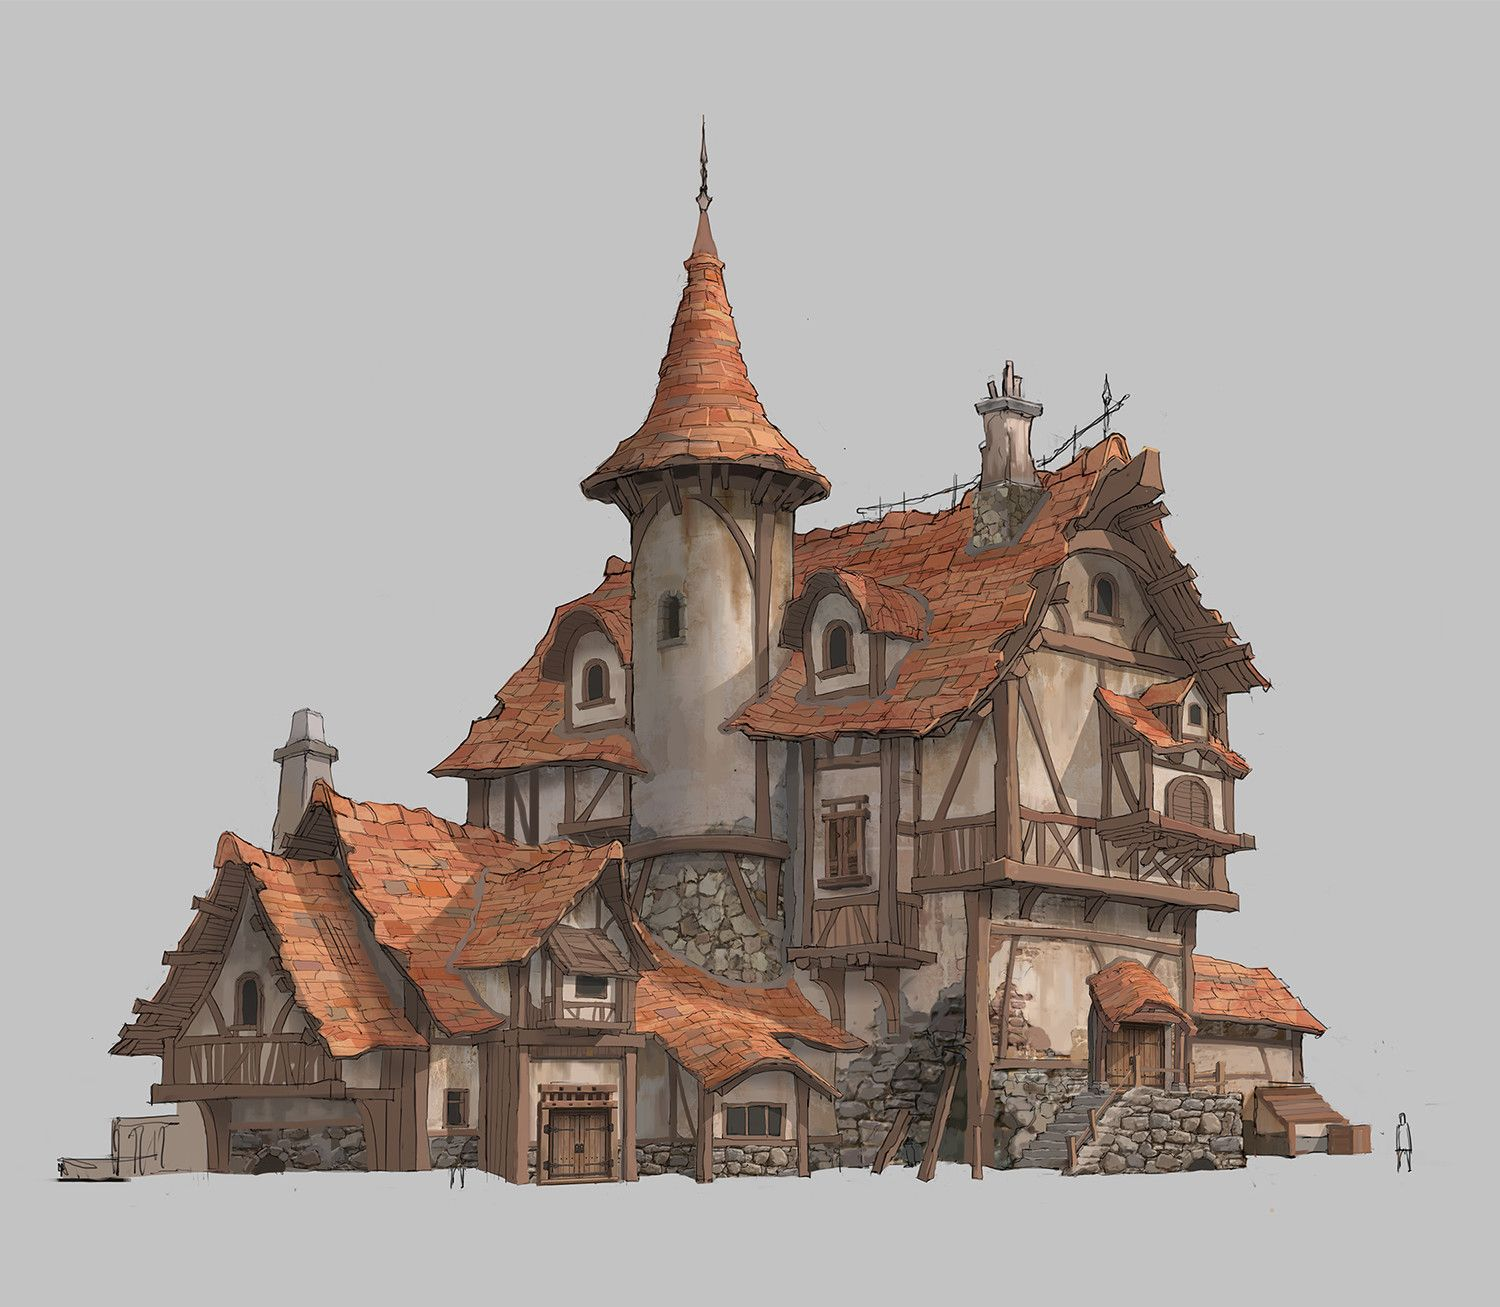 House Design Taewon Hwang Medieval Houses Architecture Drawing Concept Art